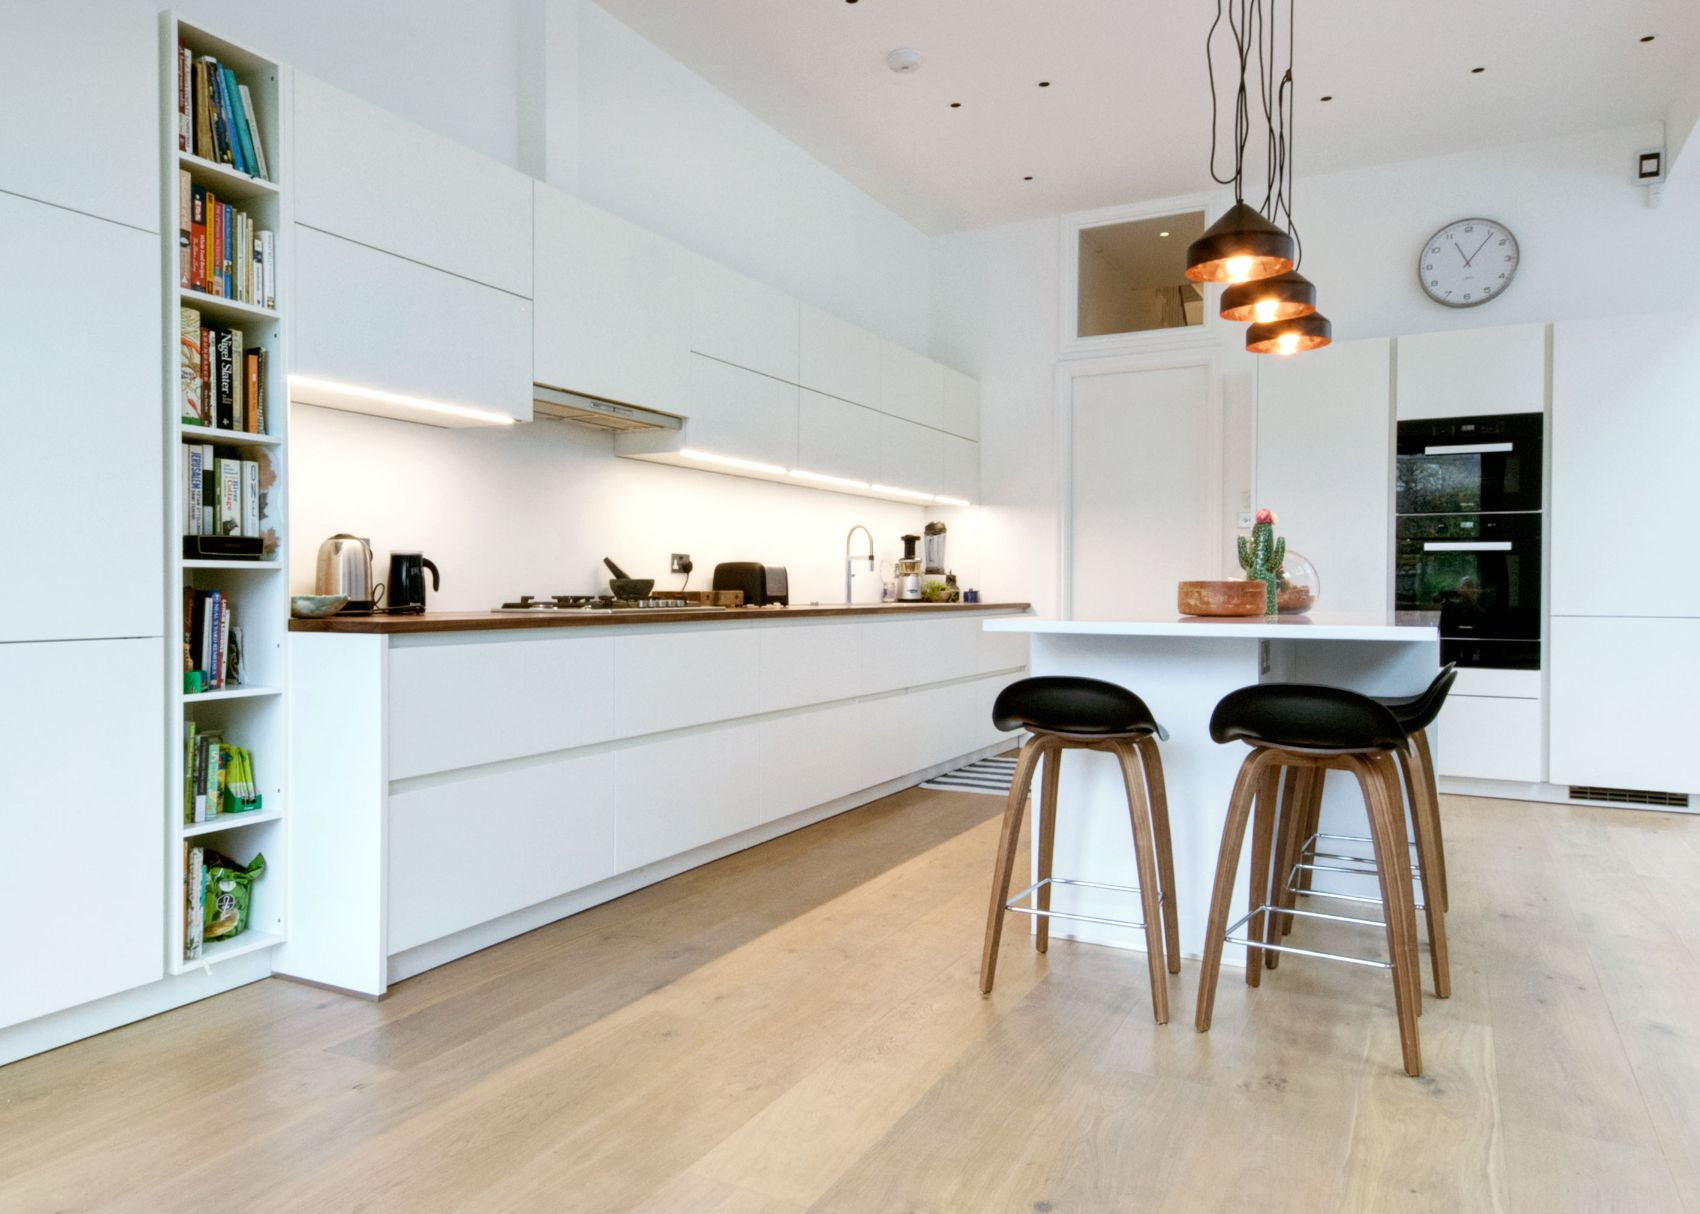 A White Matt Handleless German Kitchen In Willesden Green, London. The  Appliances Are Miele. This Is One Of Our Recent Projects.